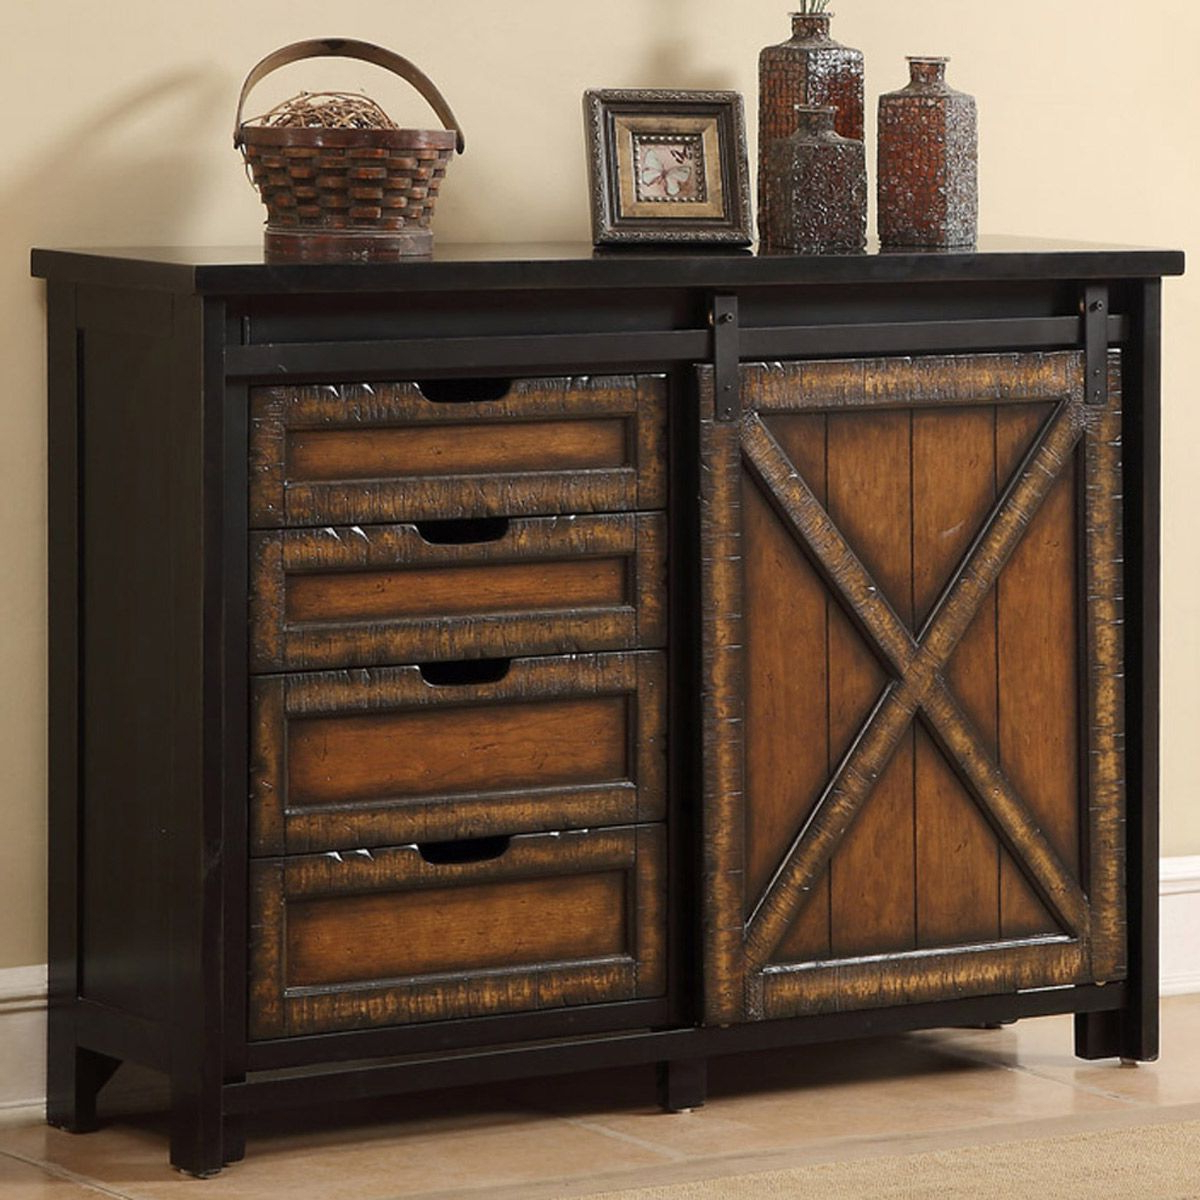 Rustic Tv Stands: Barn Wood Sliding Door Media Cabinet Inside Rustic Grey Tv Stand Media Console Stands For Living Room Bedroom (View 17 of 20)